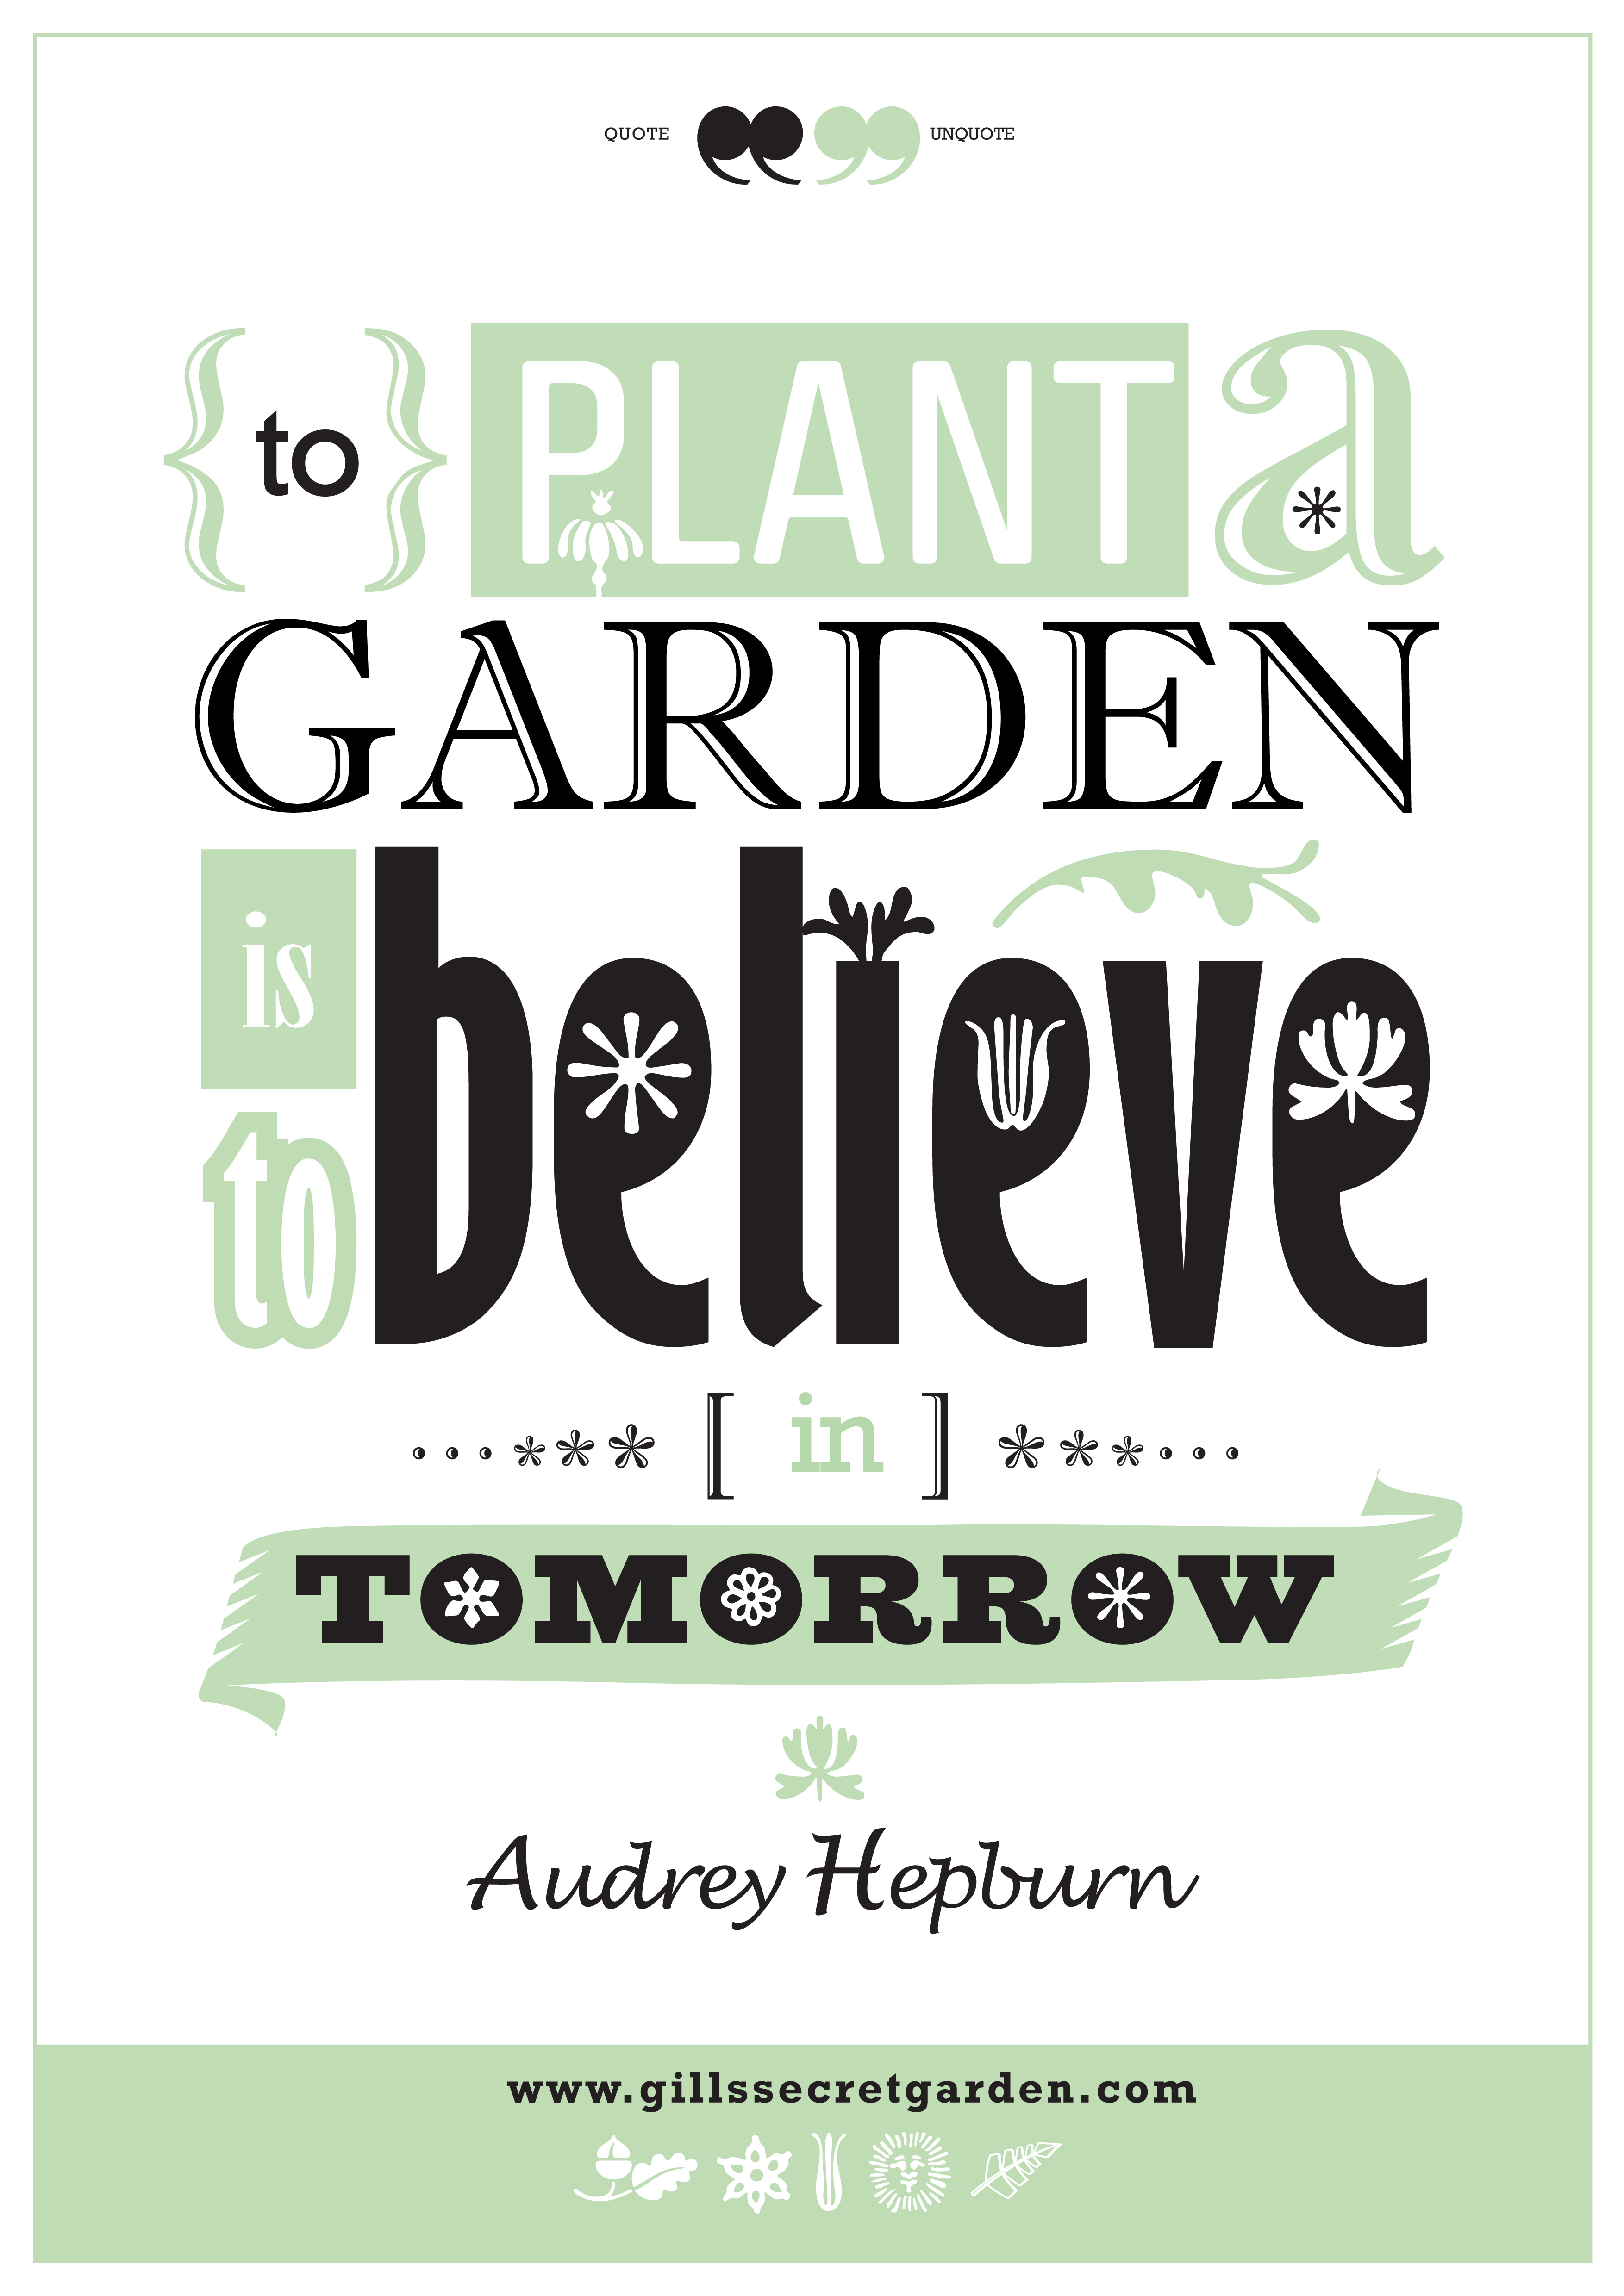 Garden Design Quotes : My poster design of a beautiful quote from the very audrey